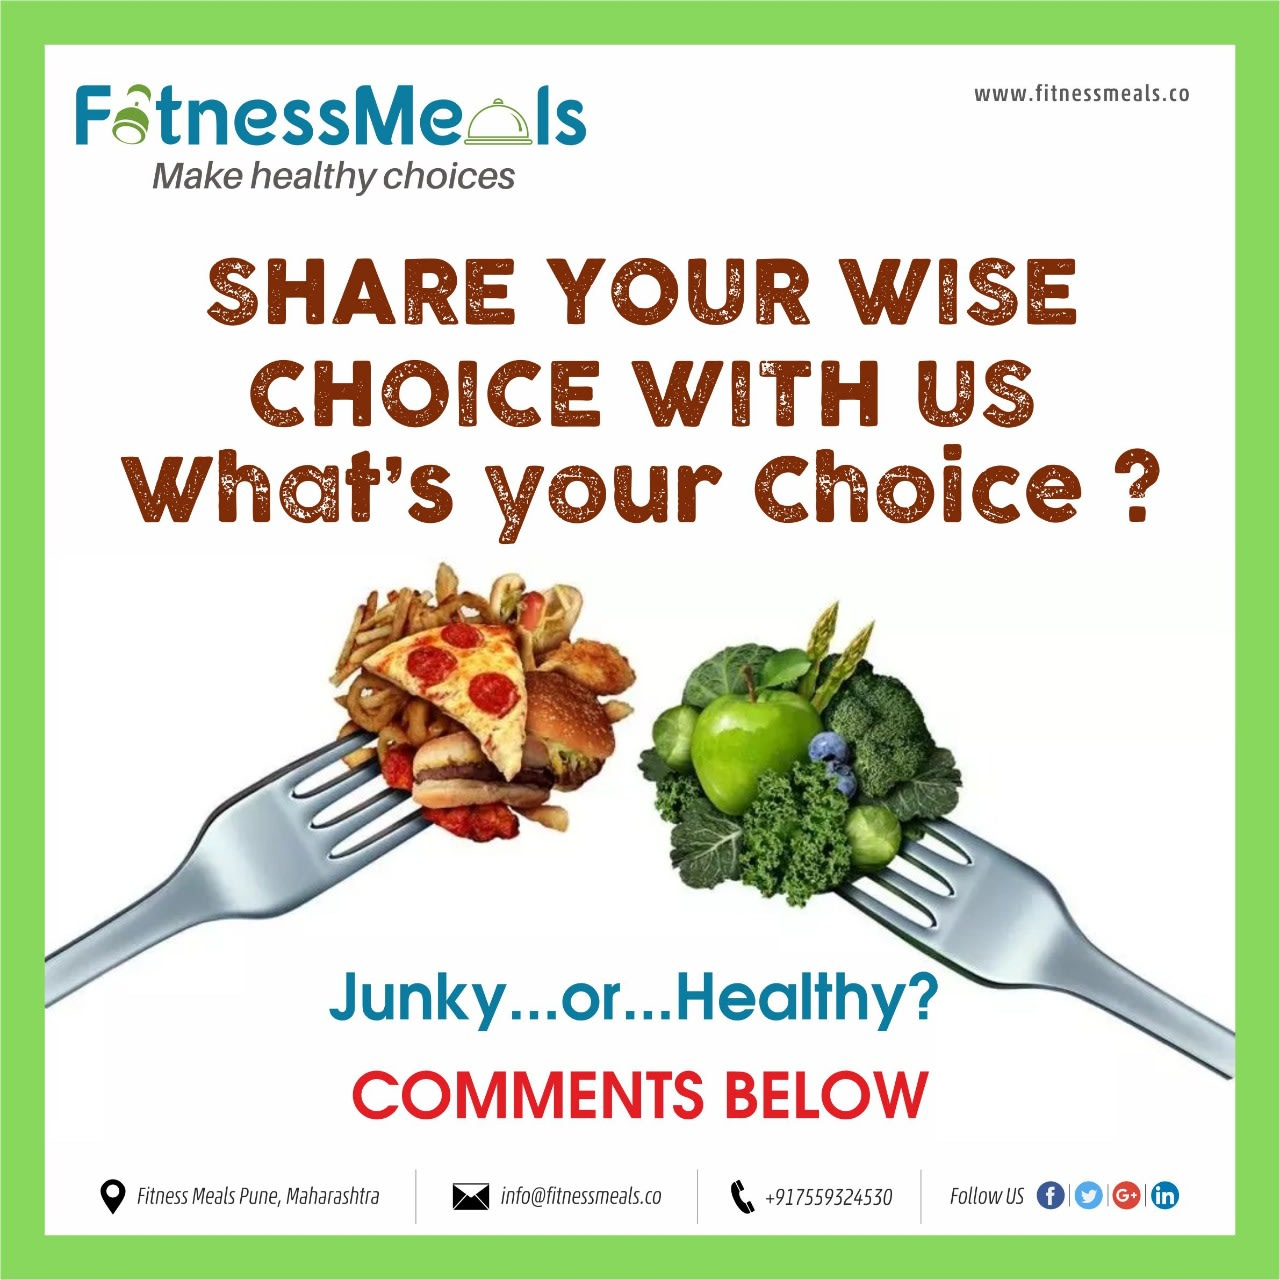 Fitness Meals Pune